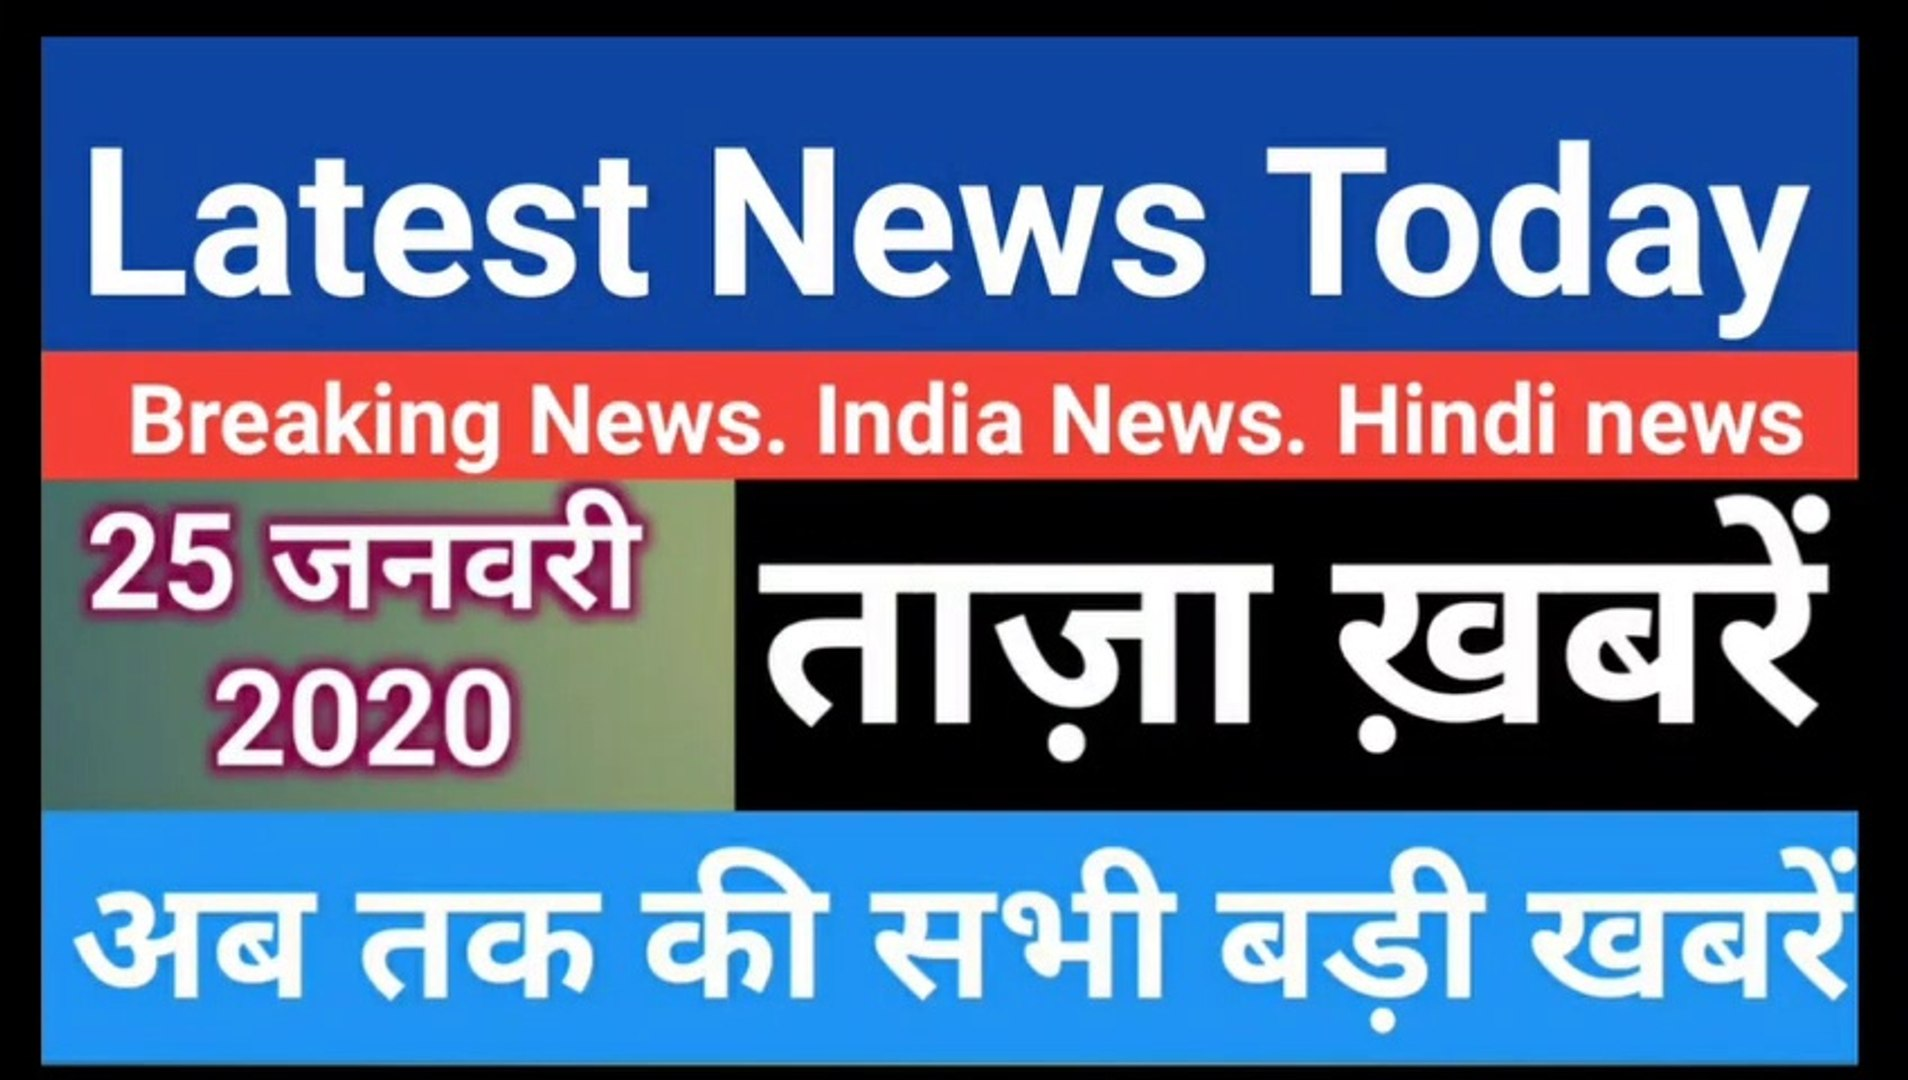 26 January 2020 : Morning News | Latest News Today |  Today News | Hindi News | India News